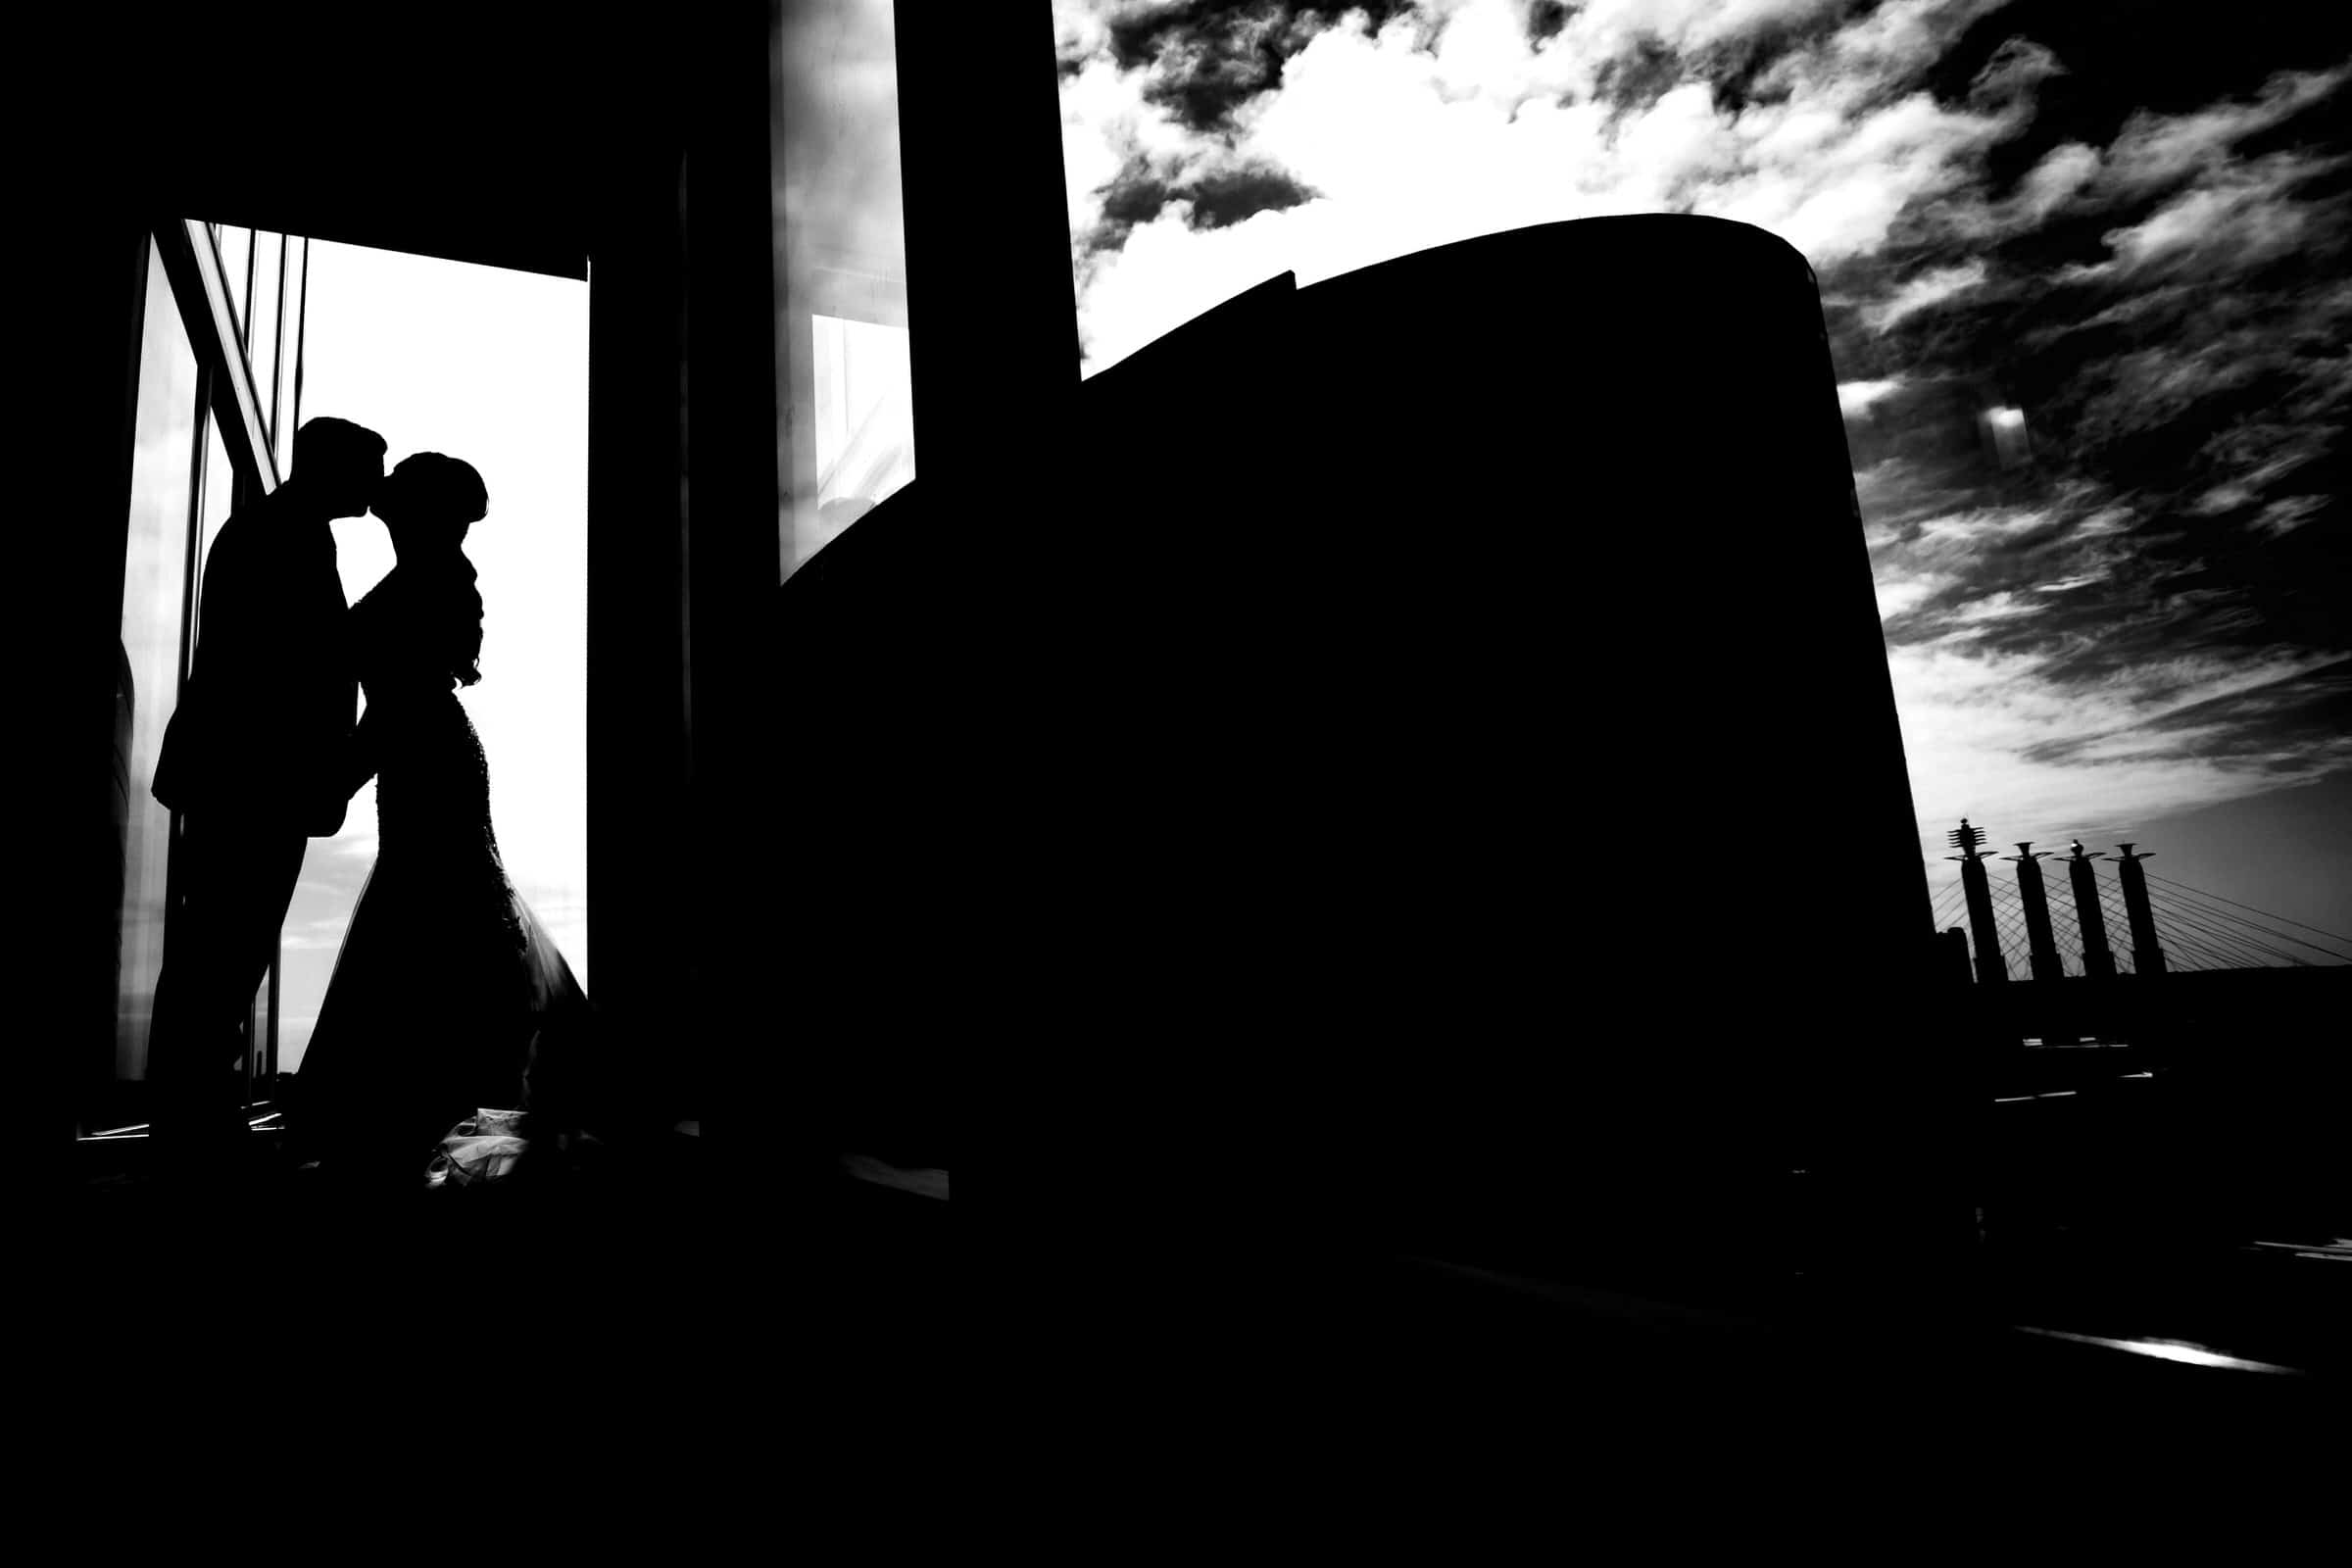 A bold black and white picture of a bride and groom silhouetted in a window in a highi-rise, with the kansas city background visible out the window behind them.